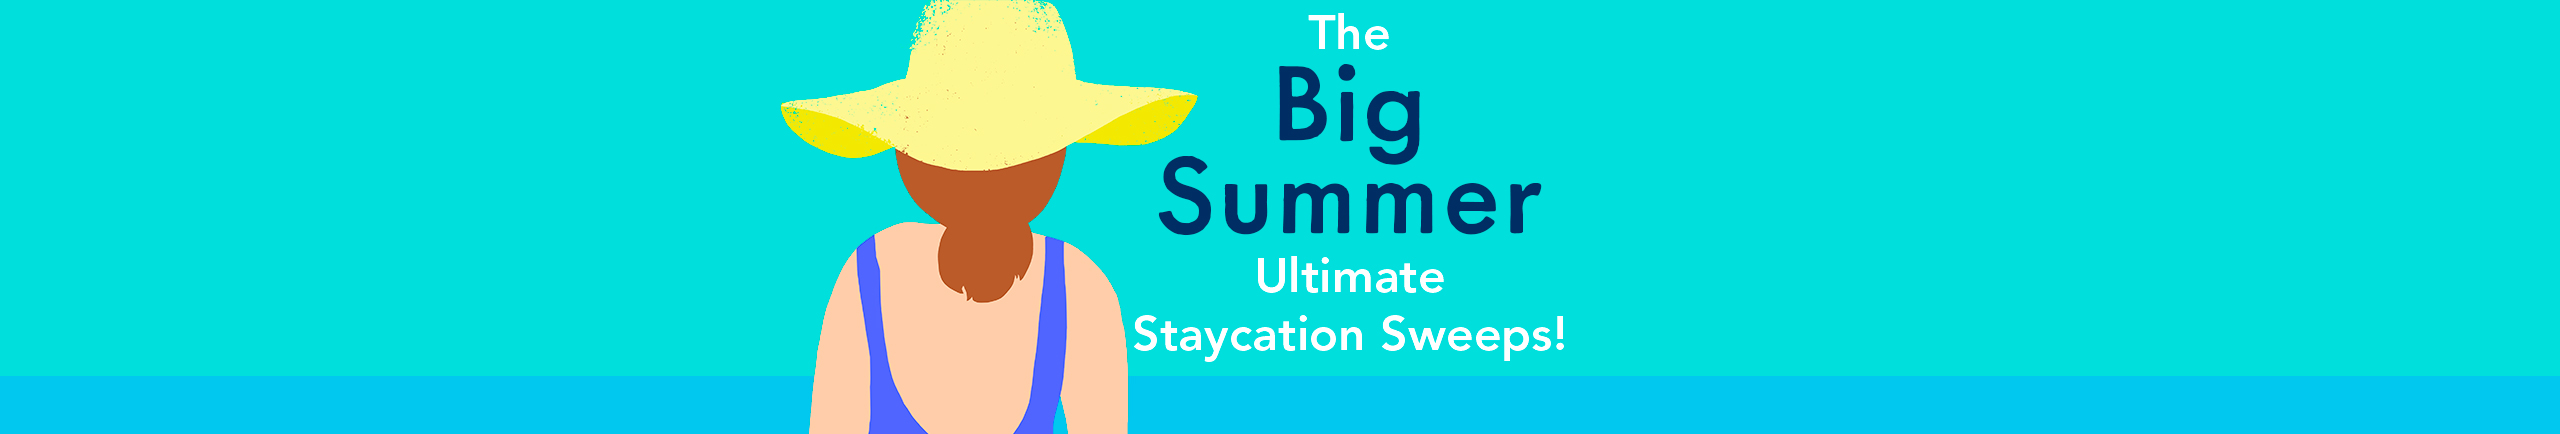 The Big Summer Ultimate Staycation Sweeps!